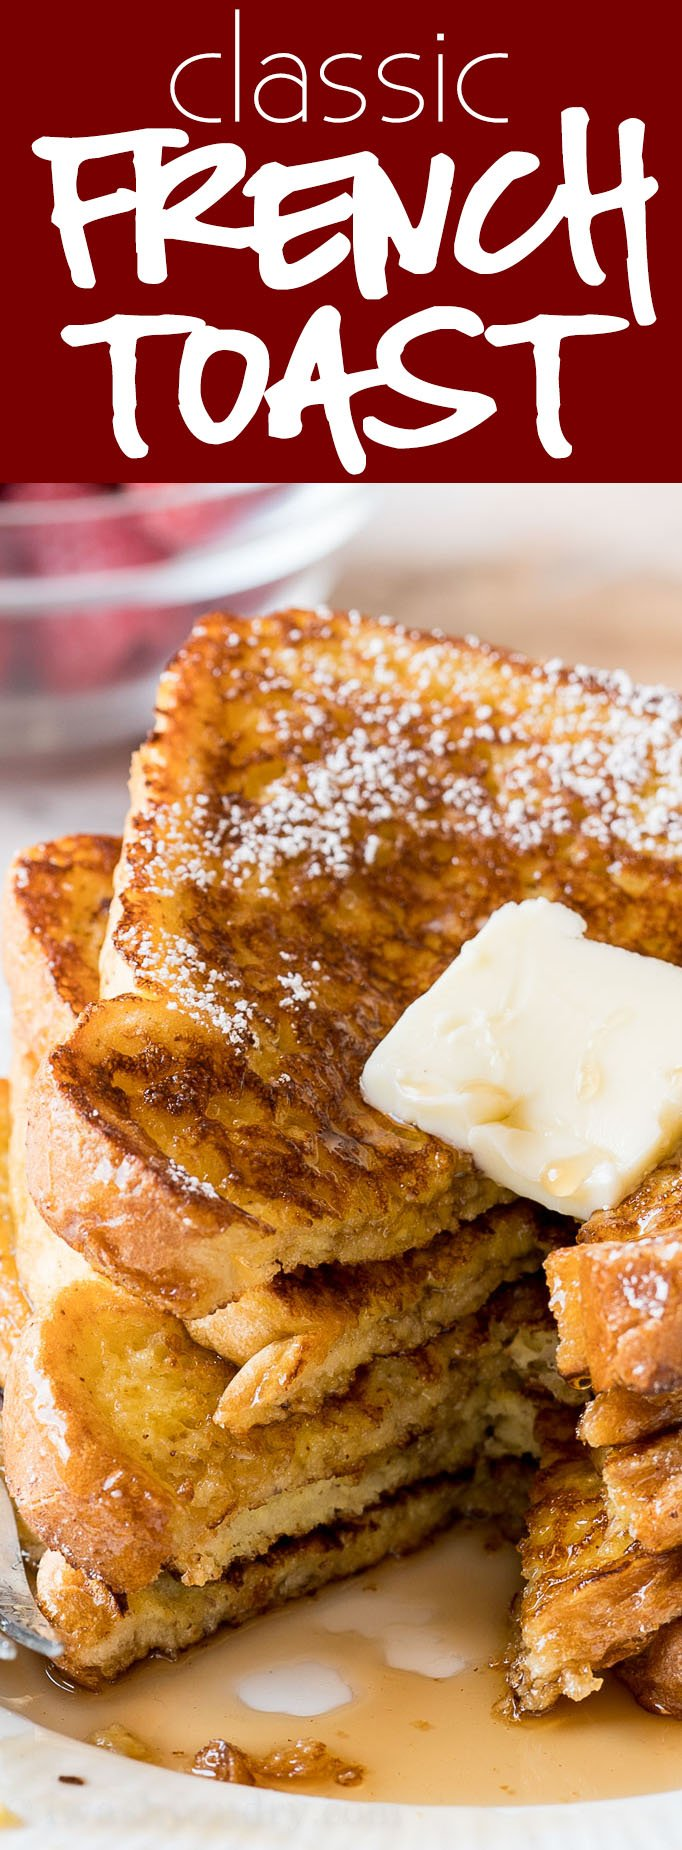 This Classic French Toast Recipe is made with simple ingredients, buttery bread and a lightly sweetened batter to make the ultimate breakfast treat.